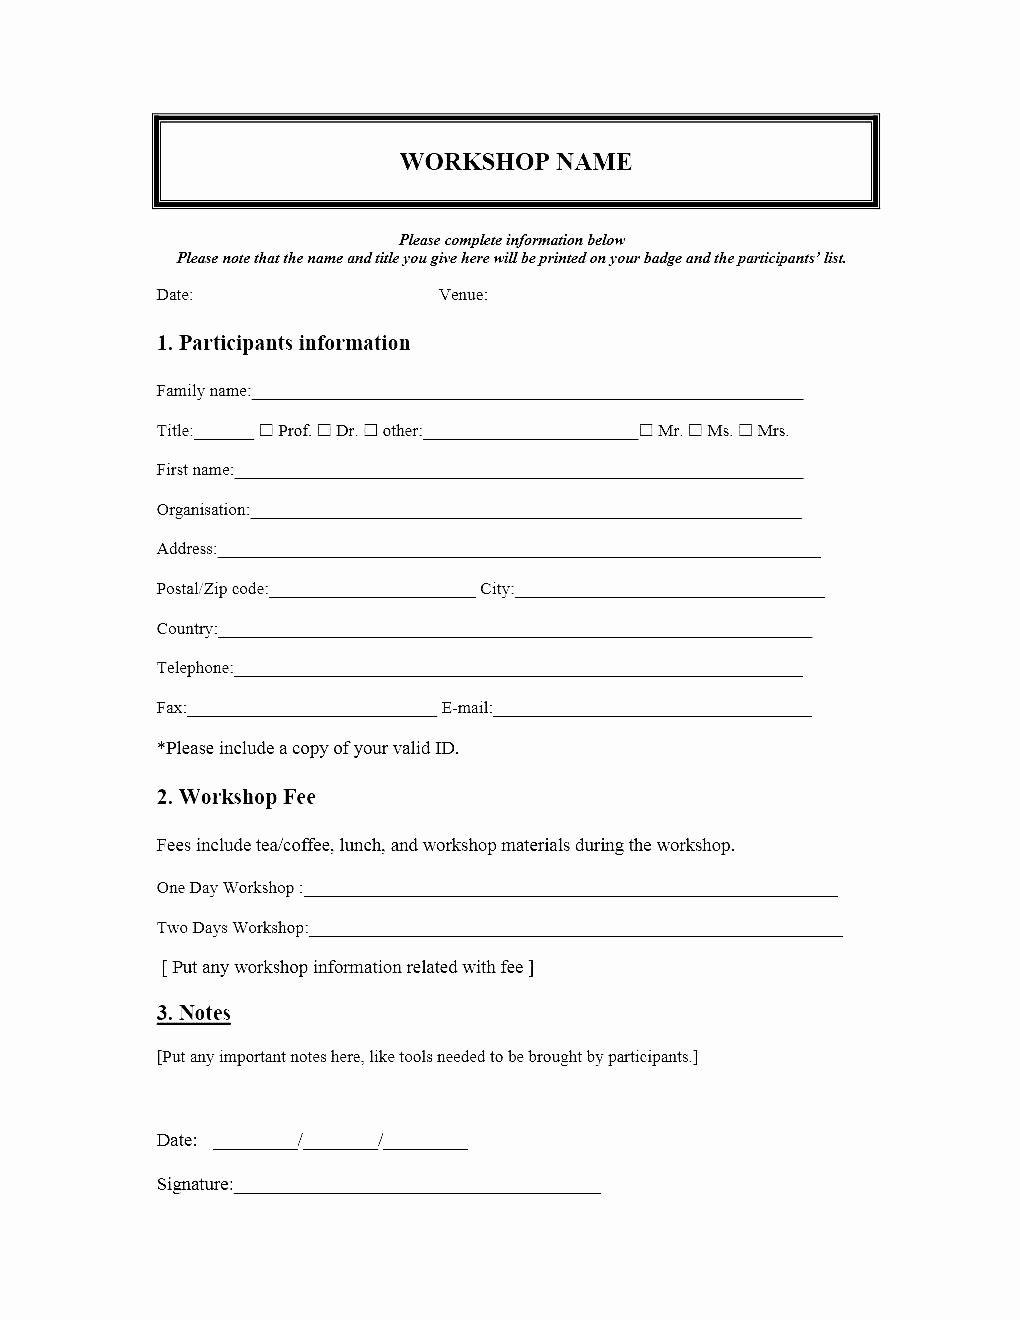 Registration form Template Microsoft Word Awesome event Registration form Template Microsoft Word